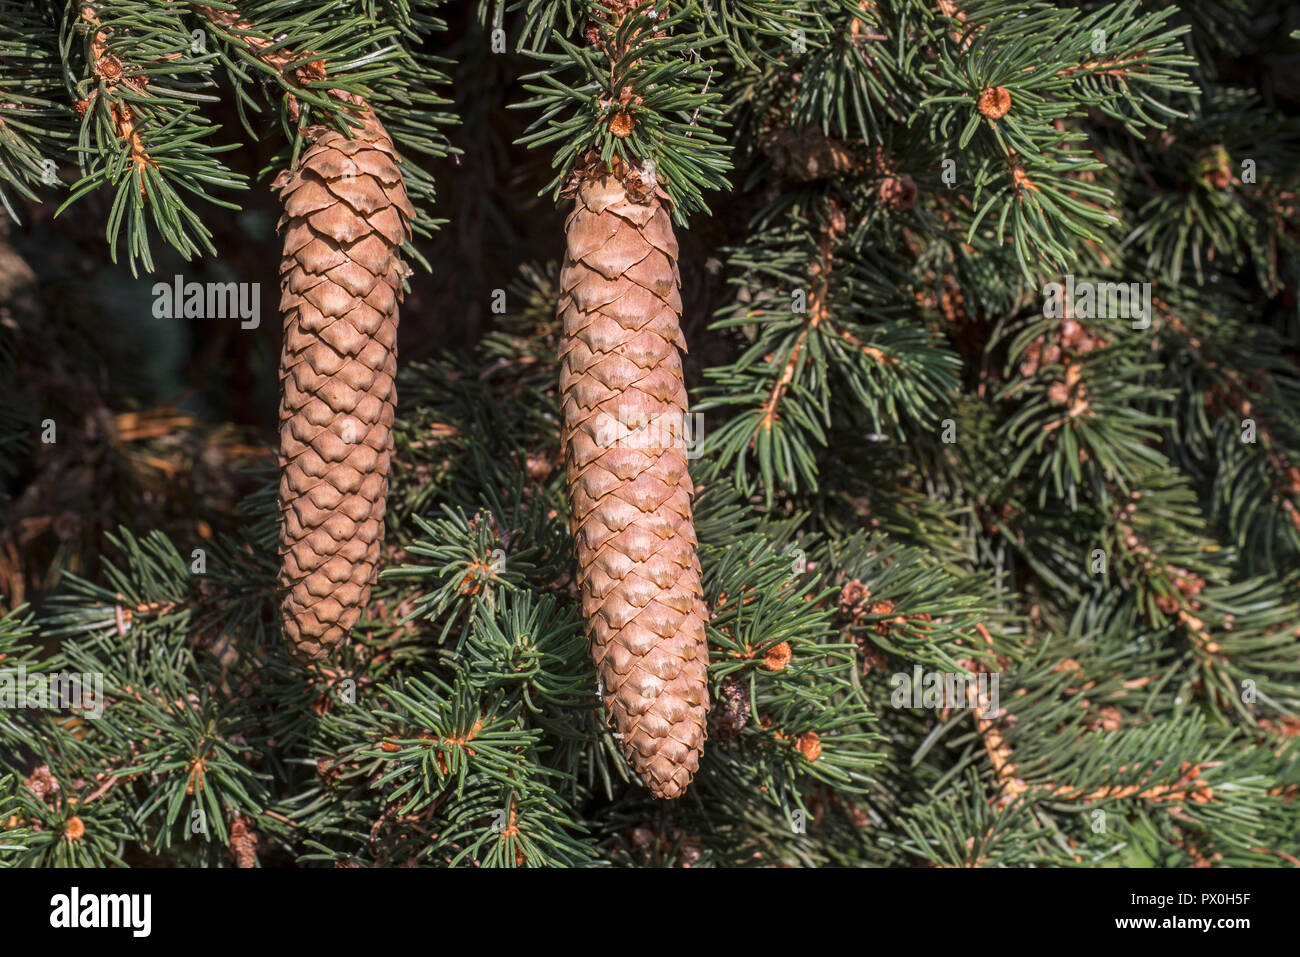 Blue spruce / green spruce / white spruce / Colorado spruce / Colorado blue spruce (Picea pungens Lombarts) close up of mature spruce cones - Stock Image